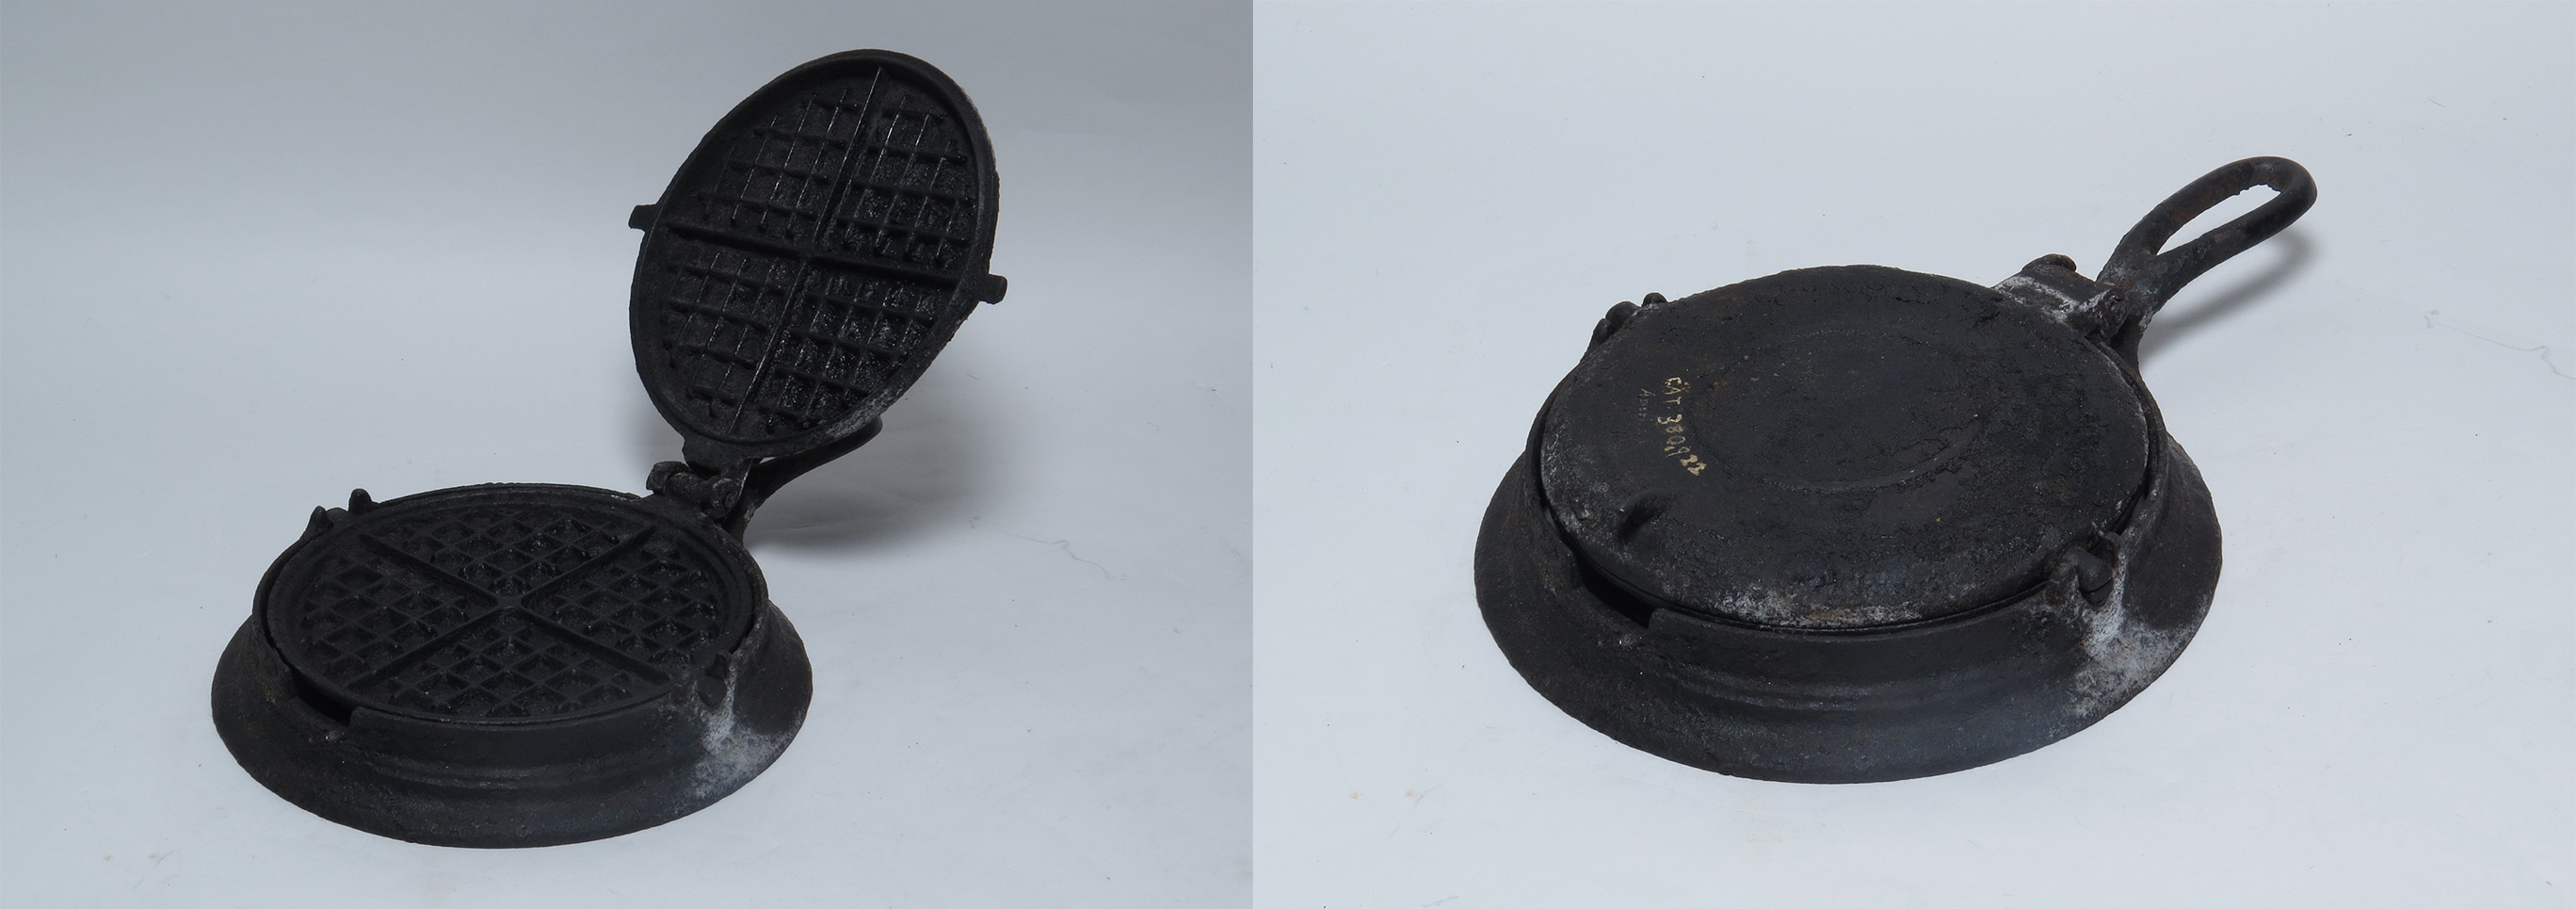 Side by side photos of a black object. On the left 7c34461cfed5